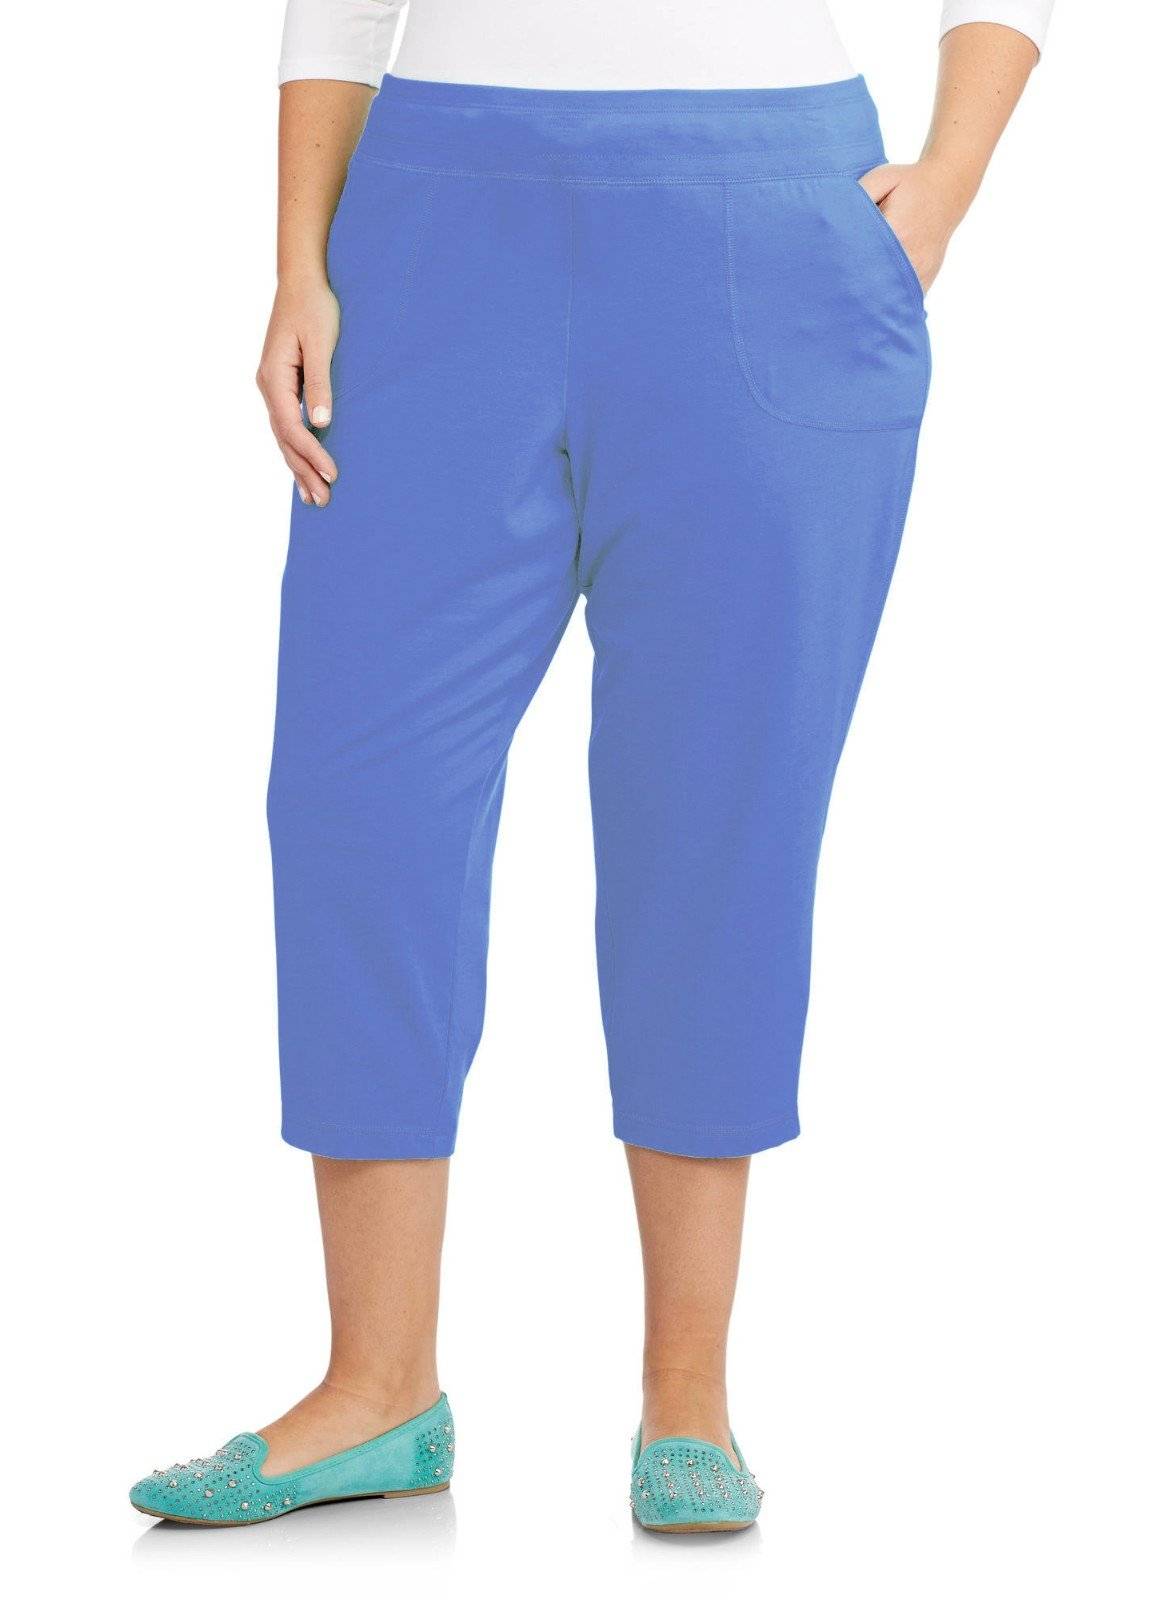 Just My Size French Terry Womens Pocket Capri Pants, Blink Blue Heather, 4X